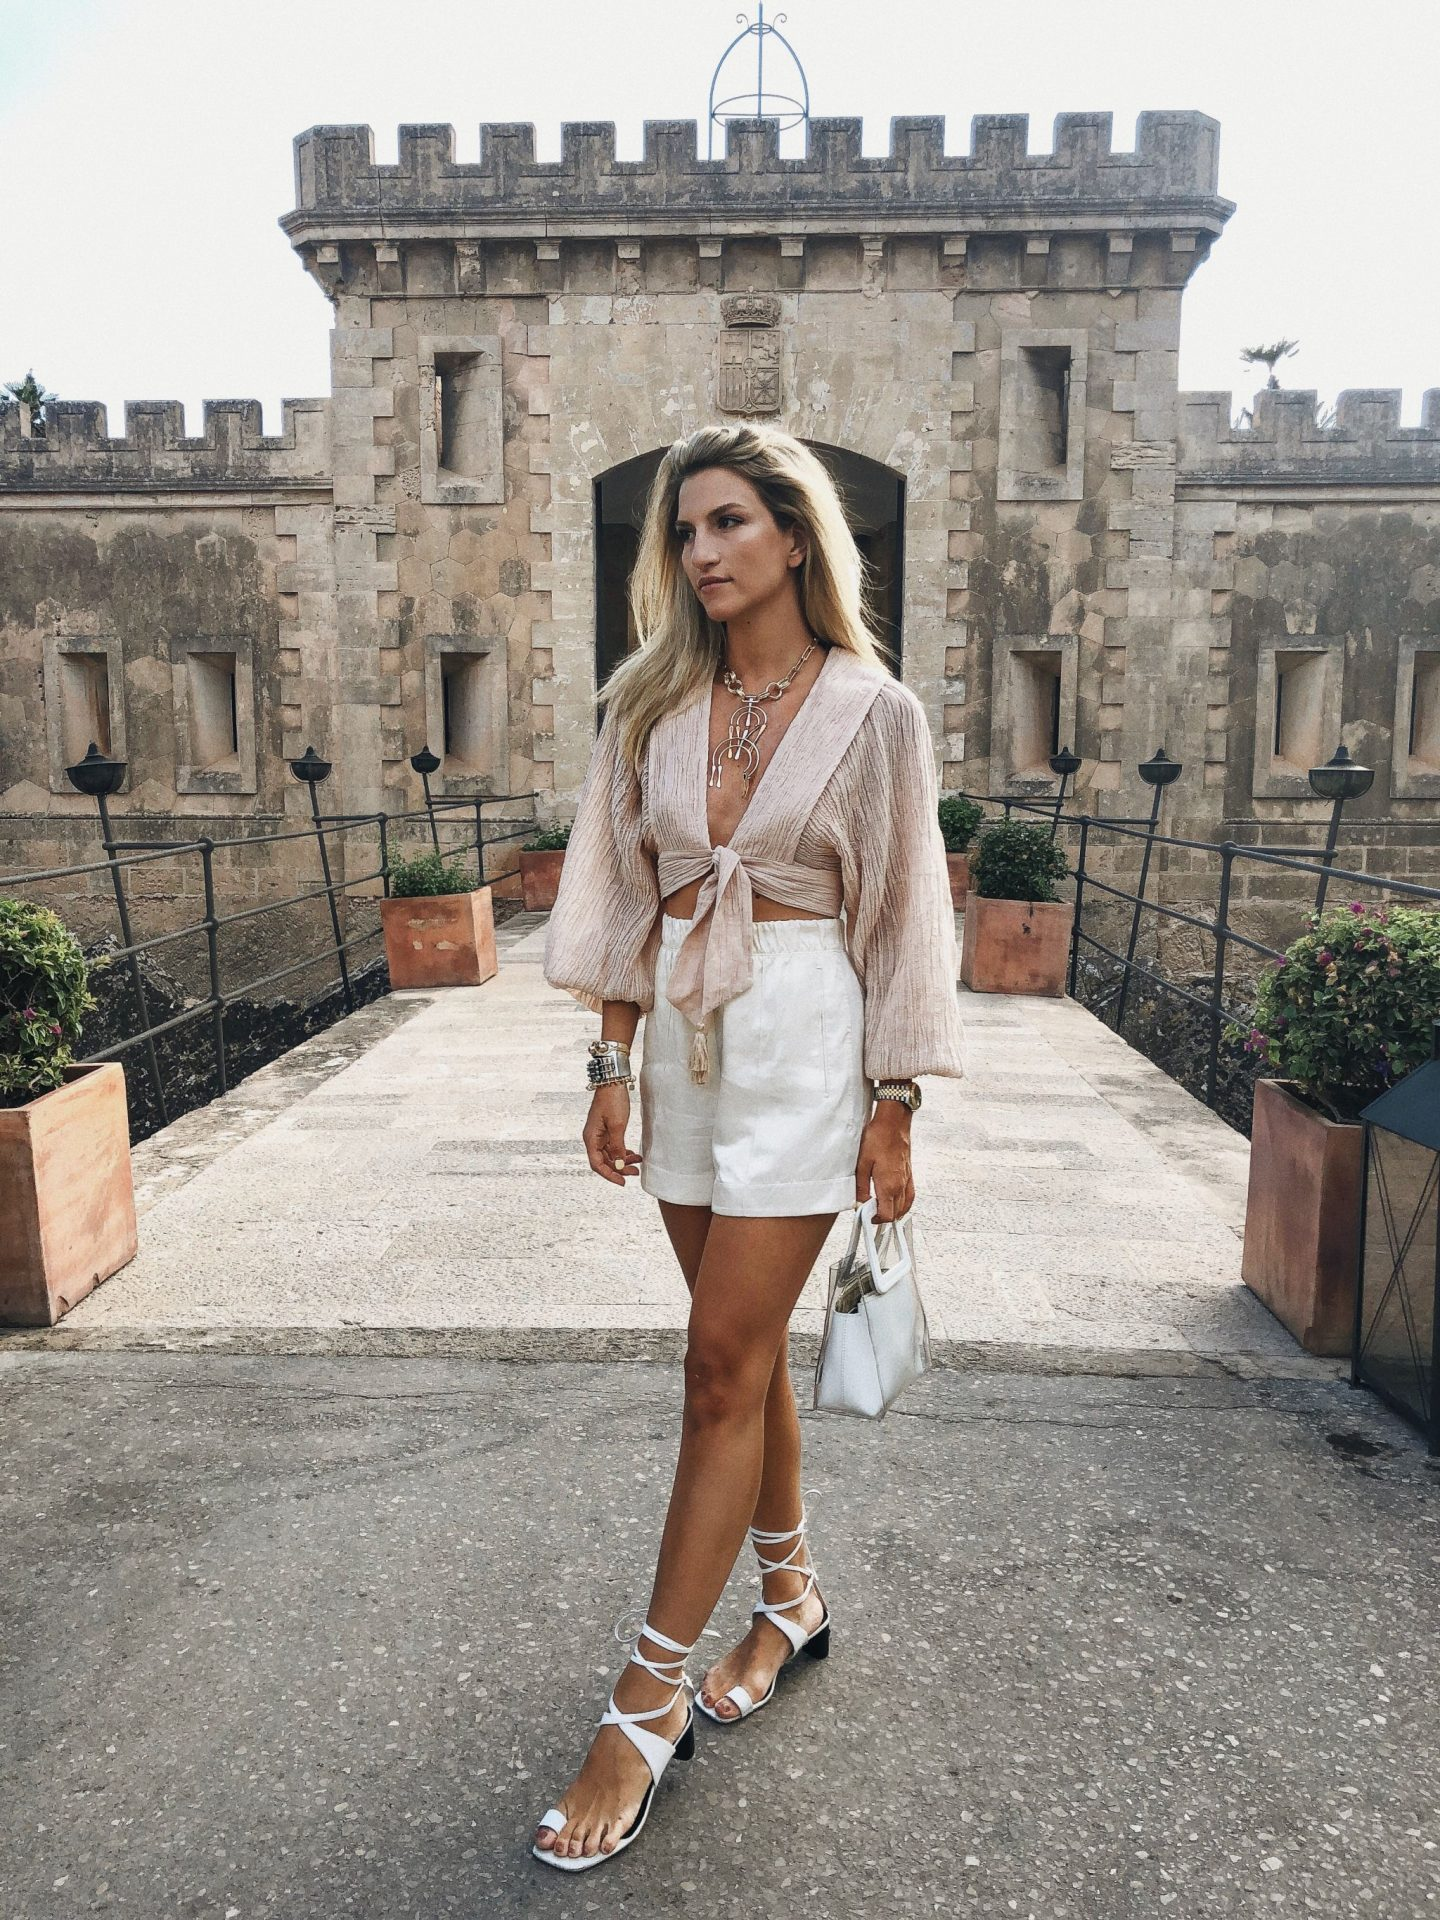 Cassandra DiMicco, Cass DiMicco, Dressed For Dreams, NYC, New York City, New York, Street Style NYC, Street Style 2018, NYC Street Style Street Style Outfits, 2018 Trends, Summer Style, Summer Outfit Inspo, Europe Outfit Inspo, NYC Fashion Blogger, Celine Wrap Sandals, Celine, Helmut Lang, Helmut Lang Shorts, Helmut Lang Ivory Silk Shorts, Zimmermann, Zimmermann Tie Front Top, Staud Clothing, Staud PVC Bag, Staud Shirley Leather PVC, Mallorca, Mallorca Inspo, Mallorca Outfit Inspo, Mallorca Vacation